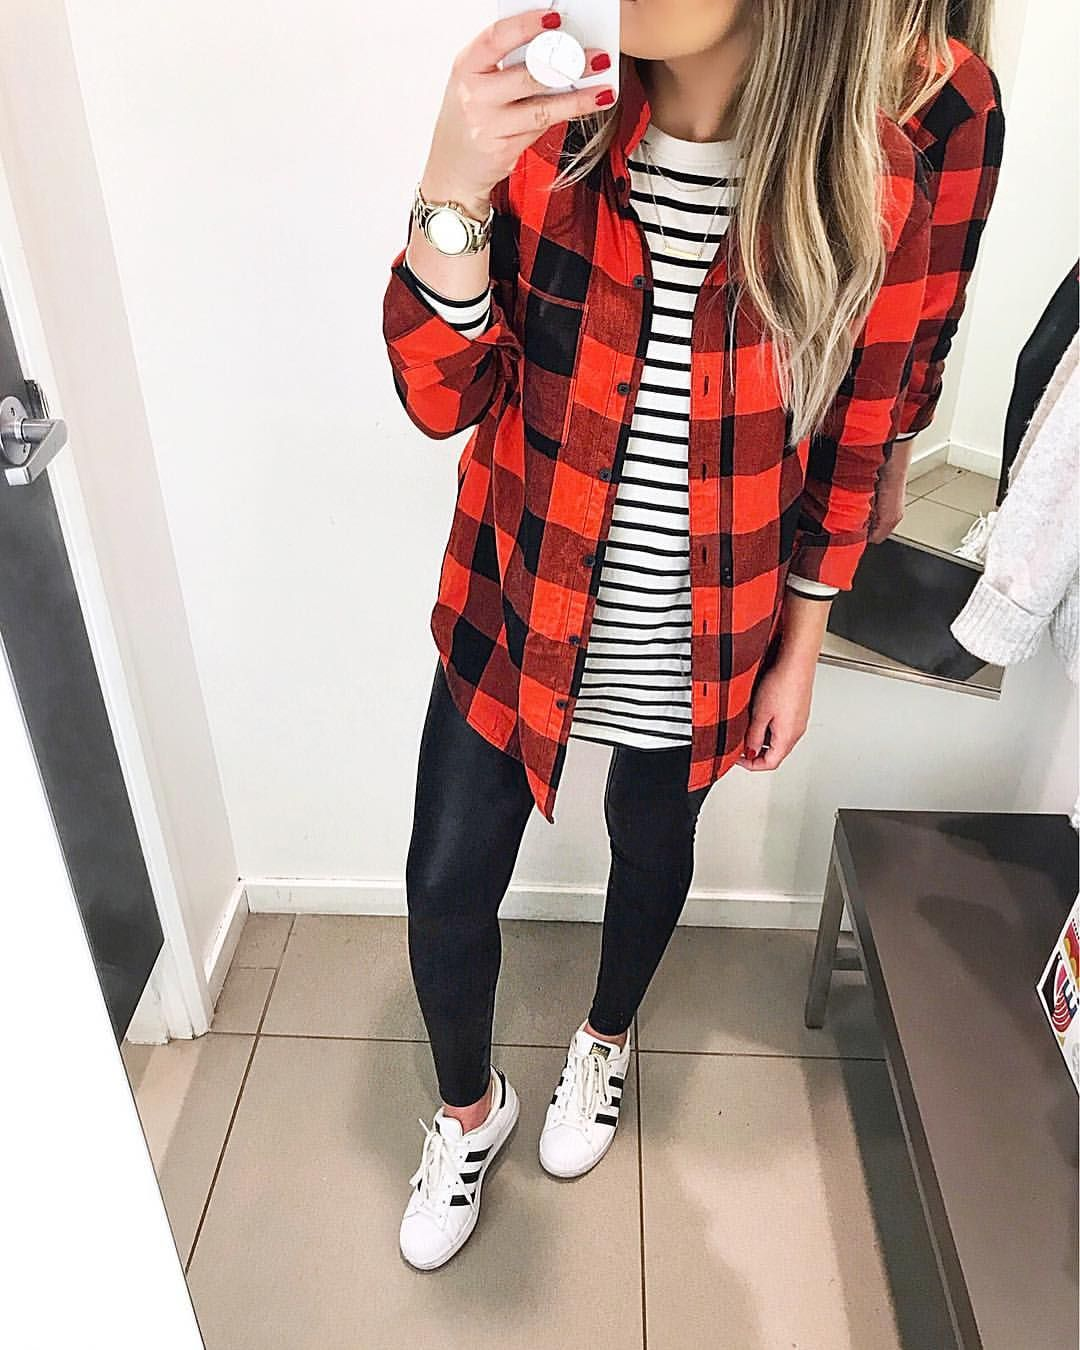 Flannel outfits with leggings  Pin by Megan Willis on dressy outfits  Pinterest  Faux leather